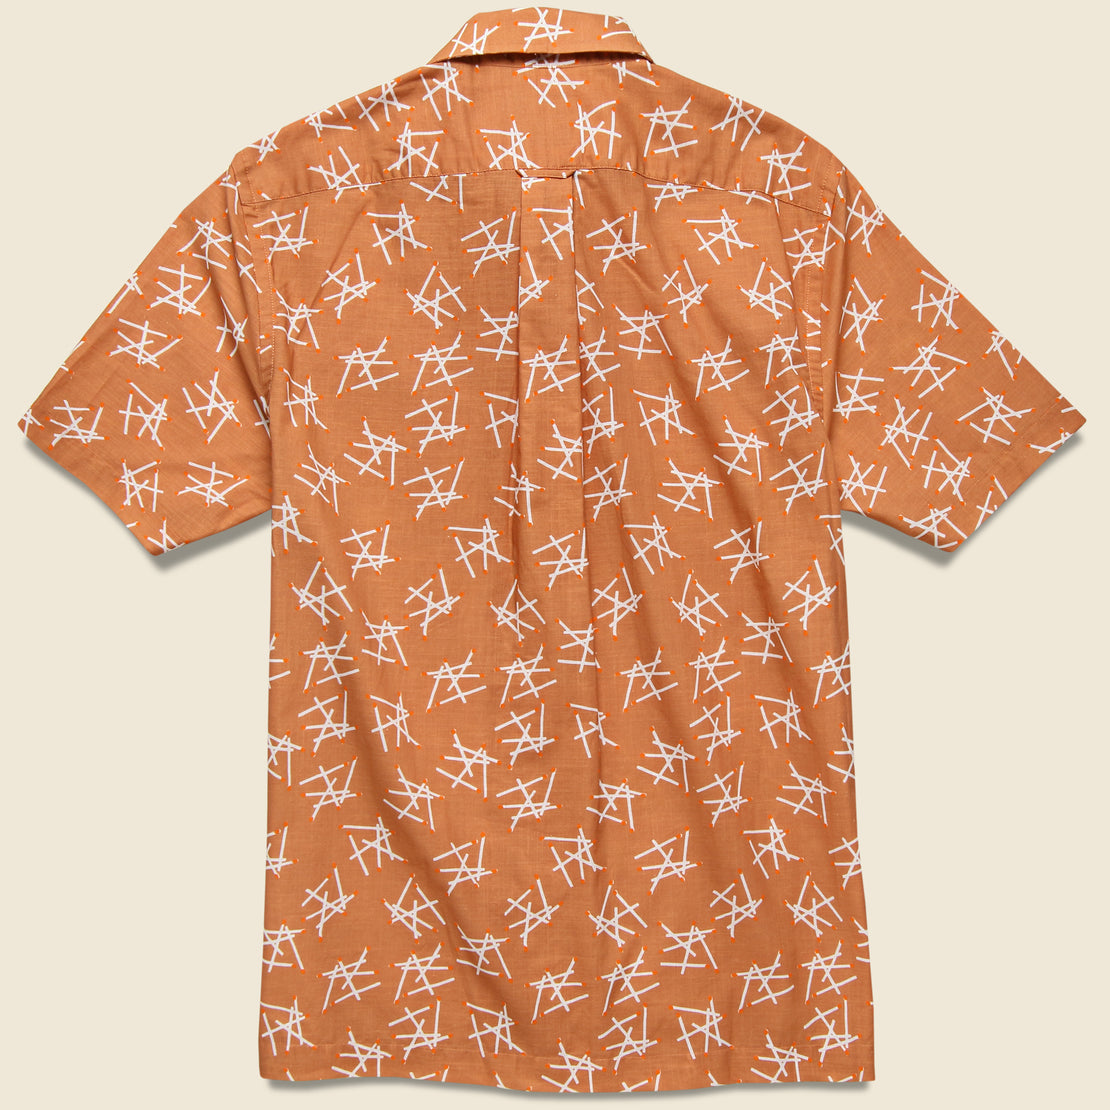 Matchstick Camp Shirt - Peach